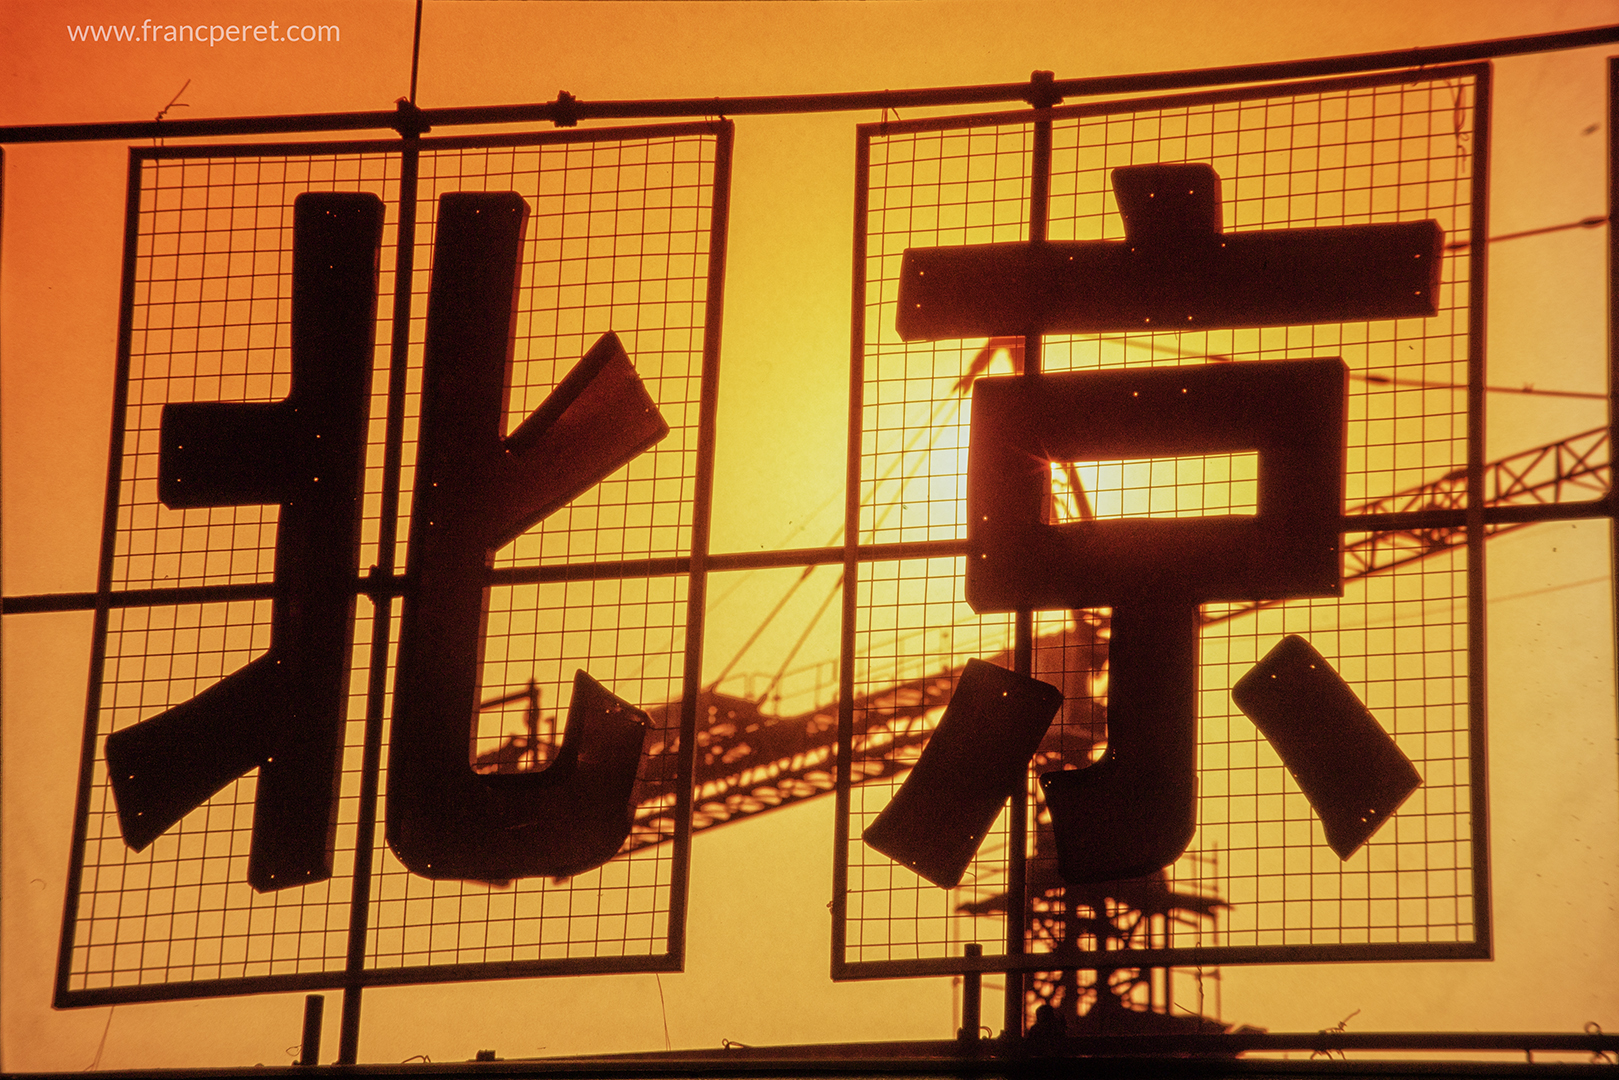 New area  for Beijing, a capital who lost its soul...